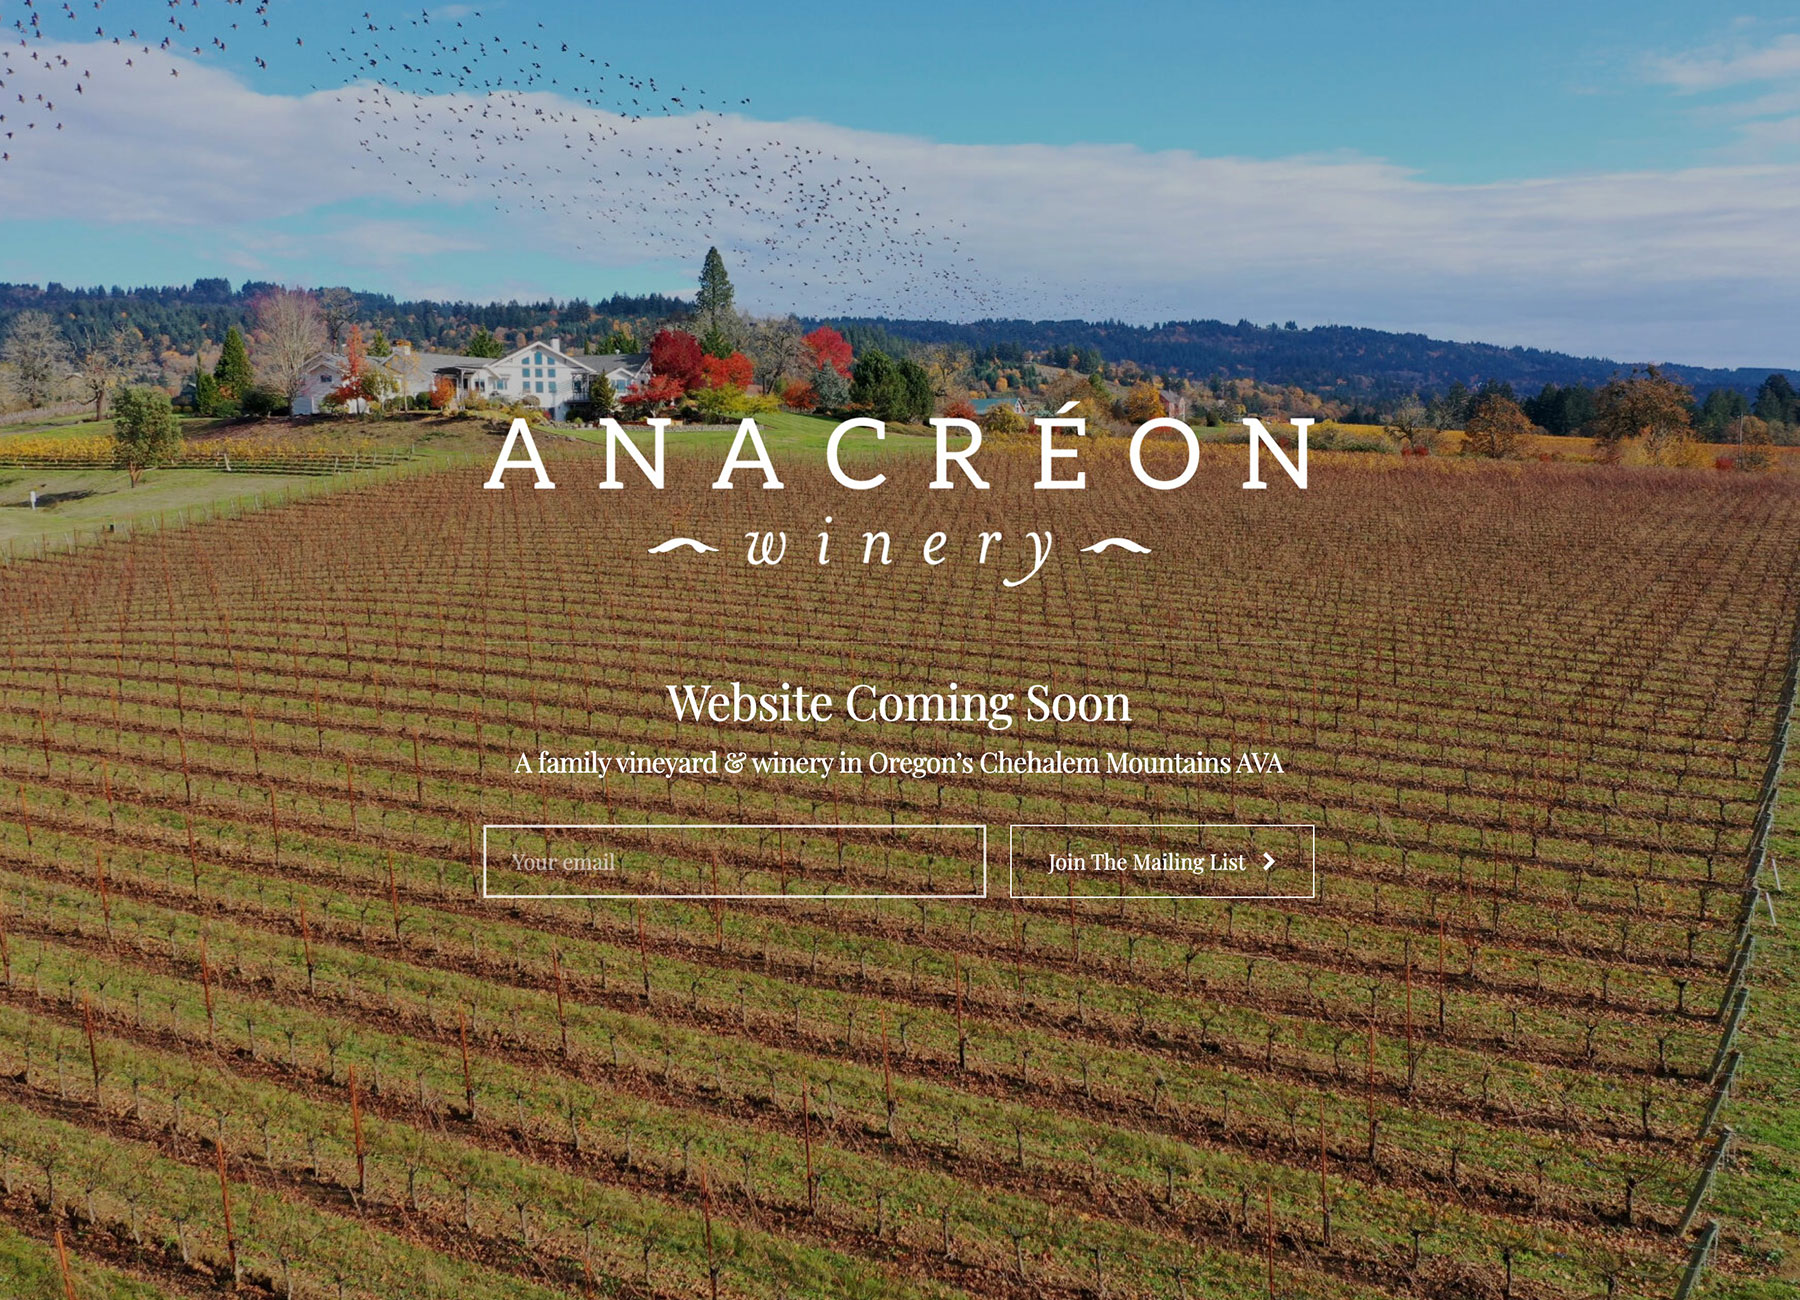 Anacréon Winery coming soon website